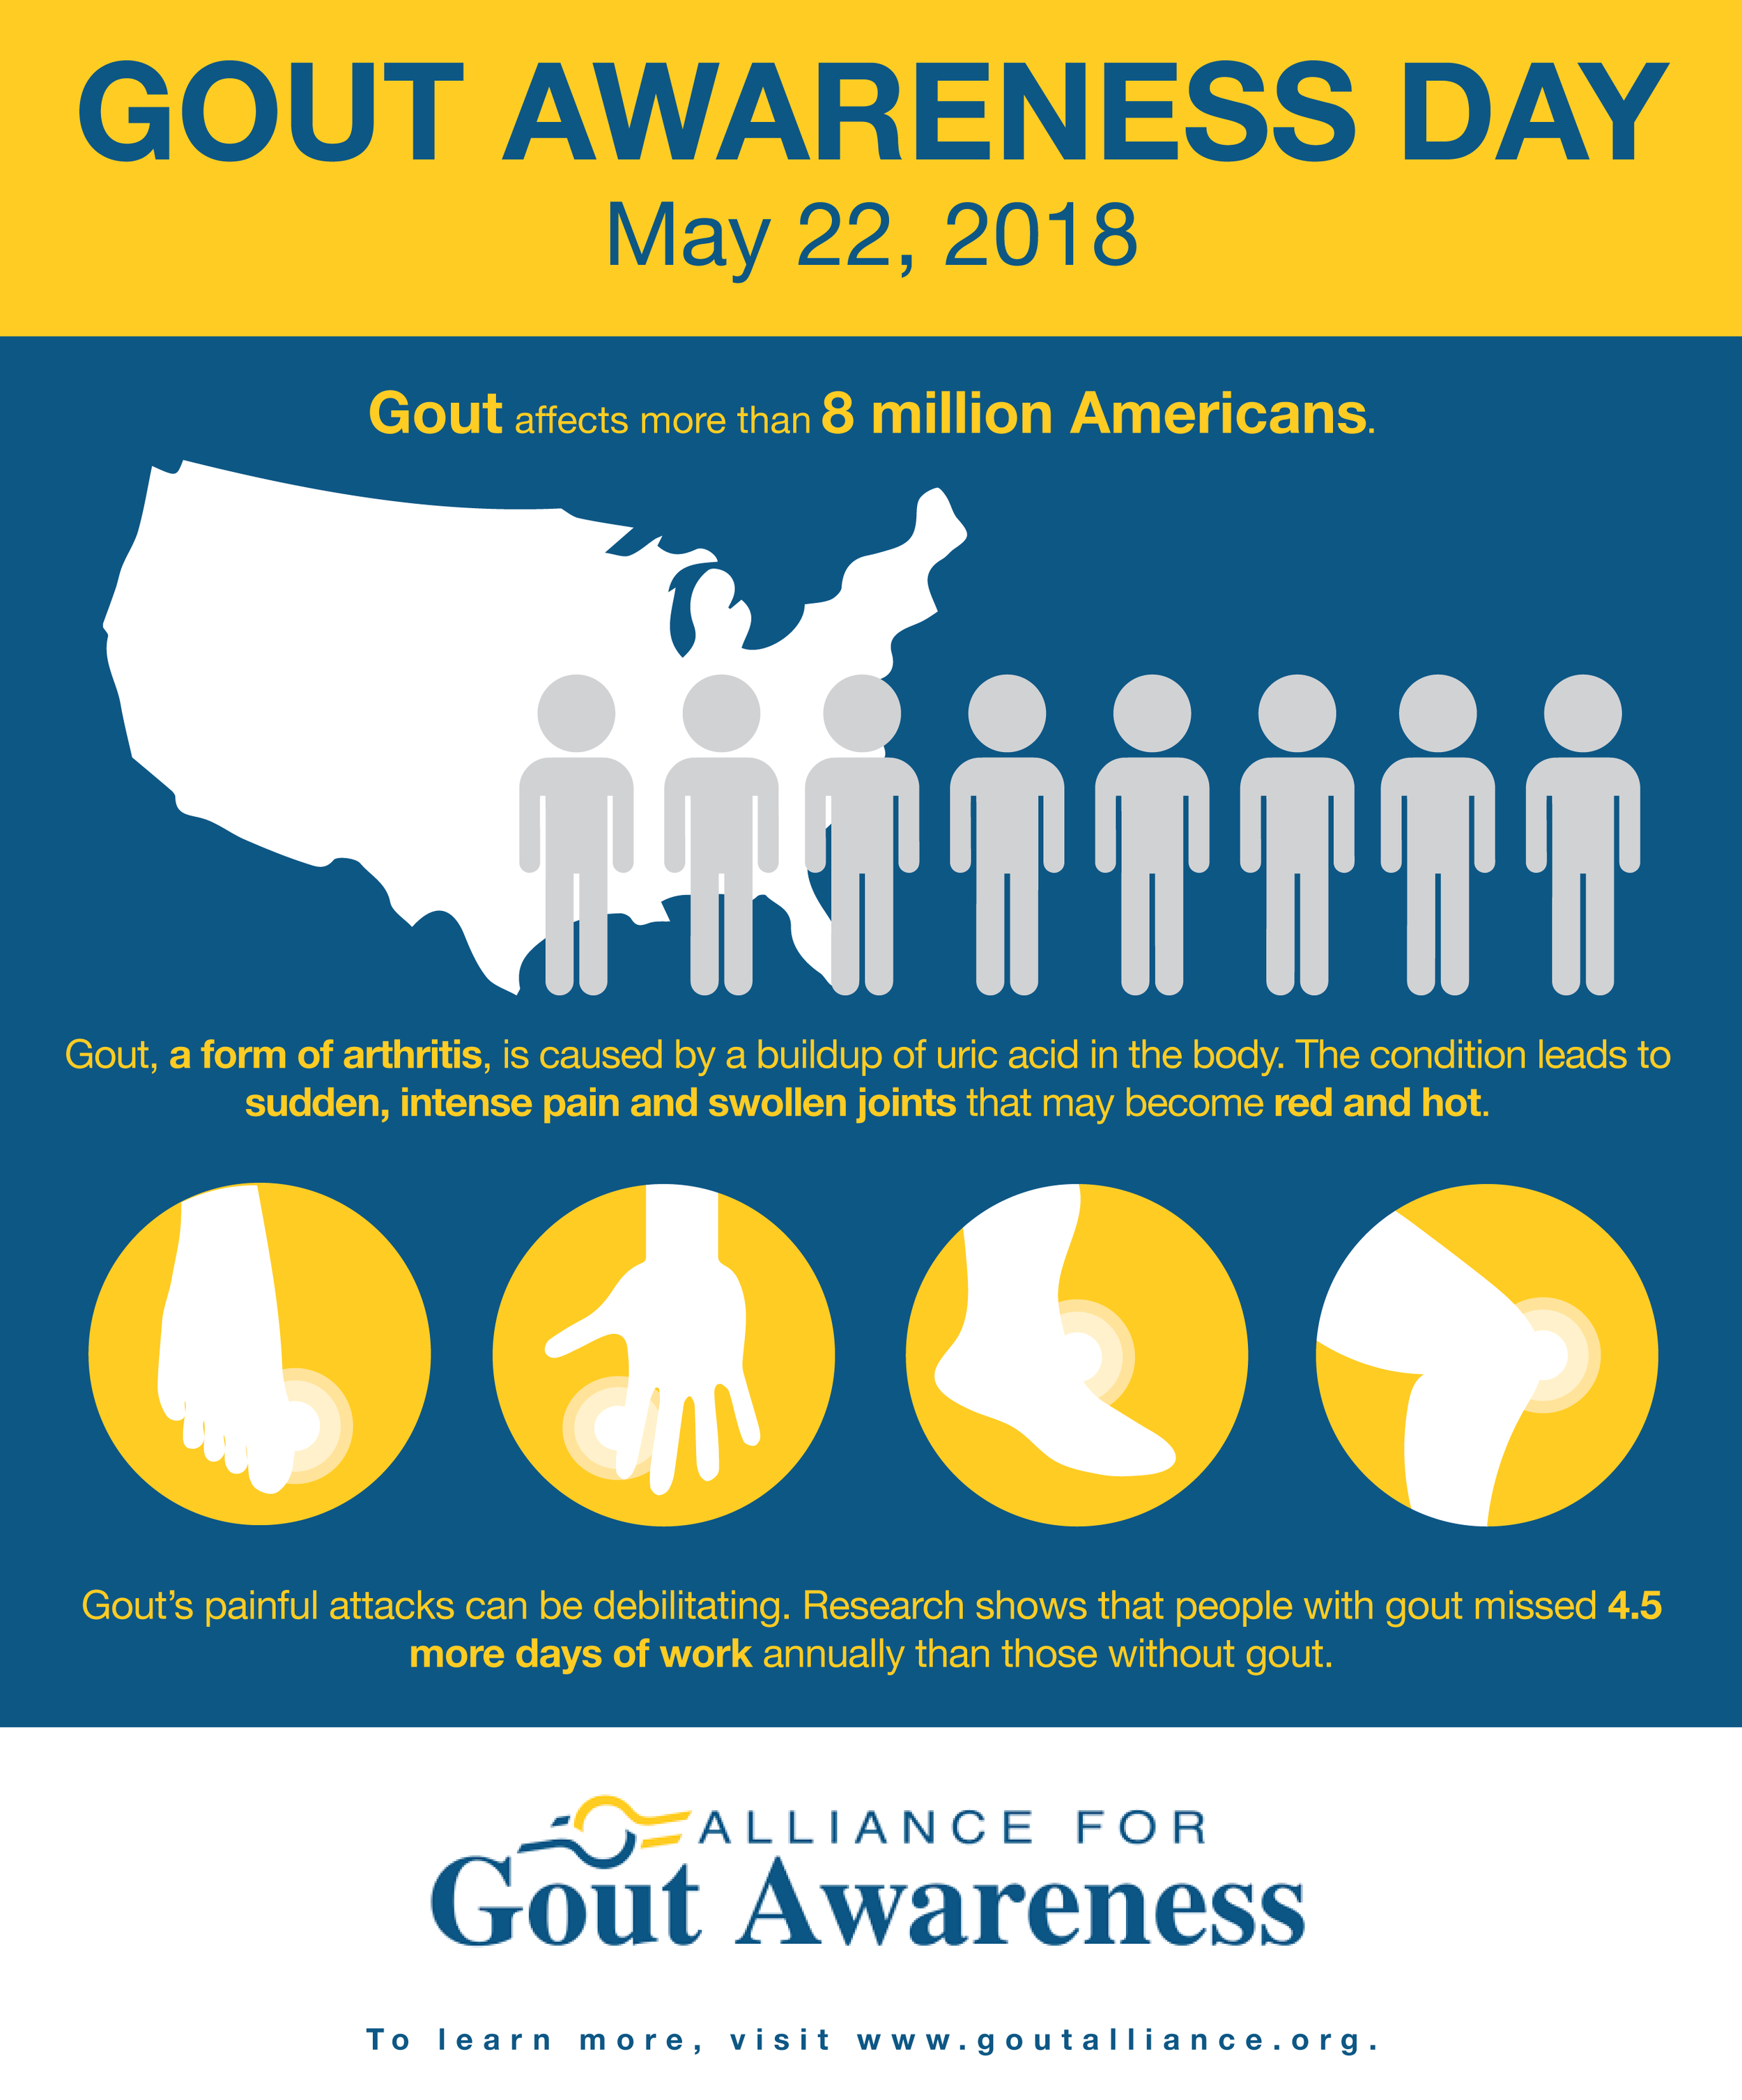 gout-awareness-day-graphic-2.png